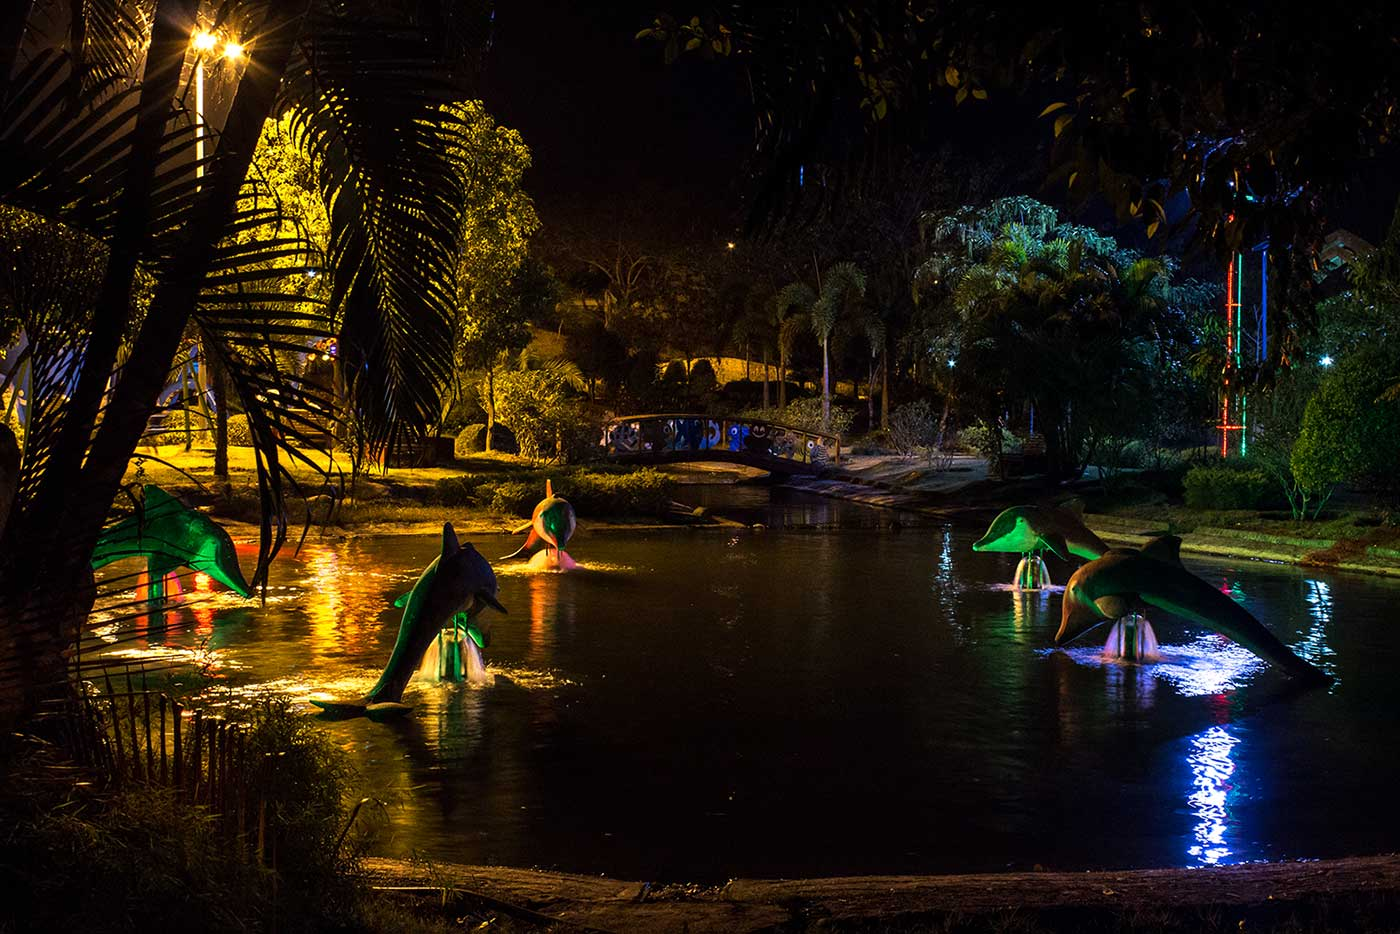 Elsewhere in Naypyidaw's Fountain Park, an illuminated pool filled with dolphin-shaped fountains.